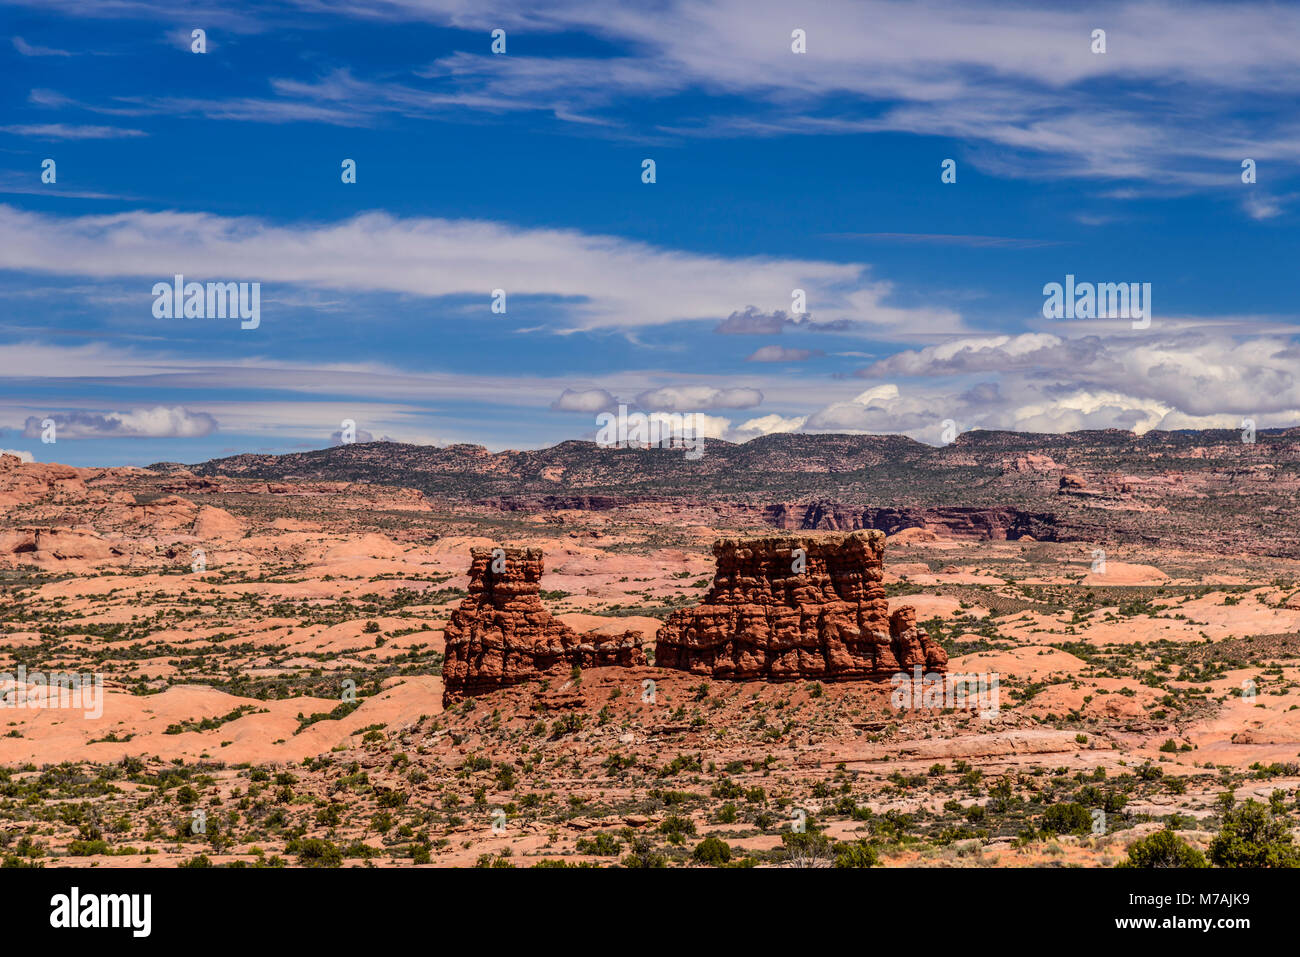 The USA, Utah, Grand county, Moab, Arches National Park, Petrified Dunes, view from the La Sal Mountains Viewpoint - Stock Image